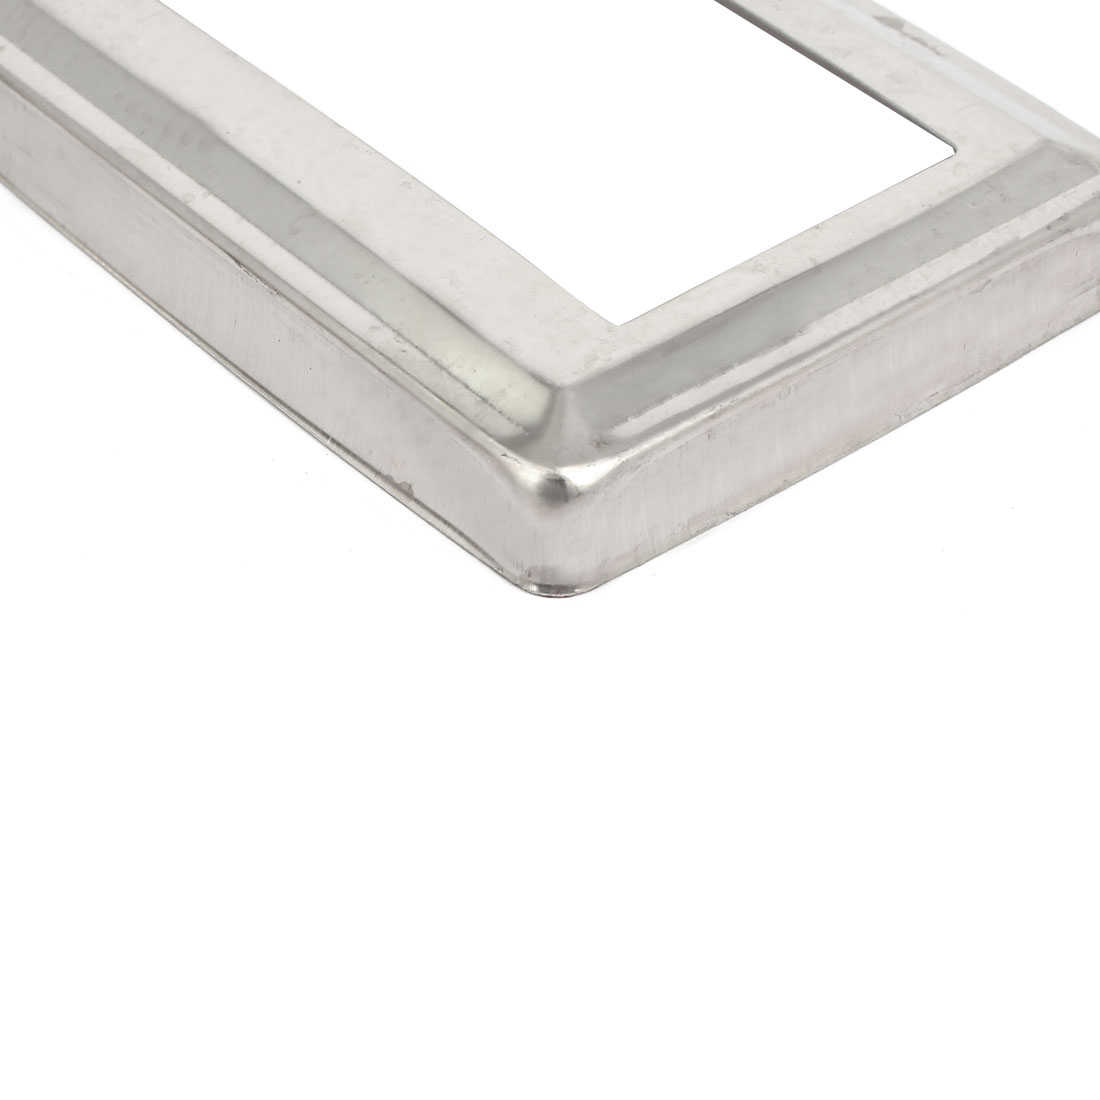 Unique Bargains 2pcs Ladder Handrail Hand Rail 4' x 2' Post Plate Cover 201 Stainless Steel